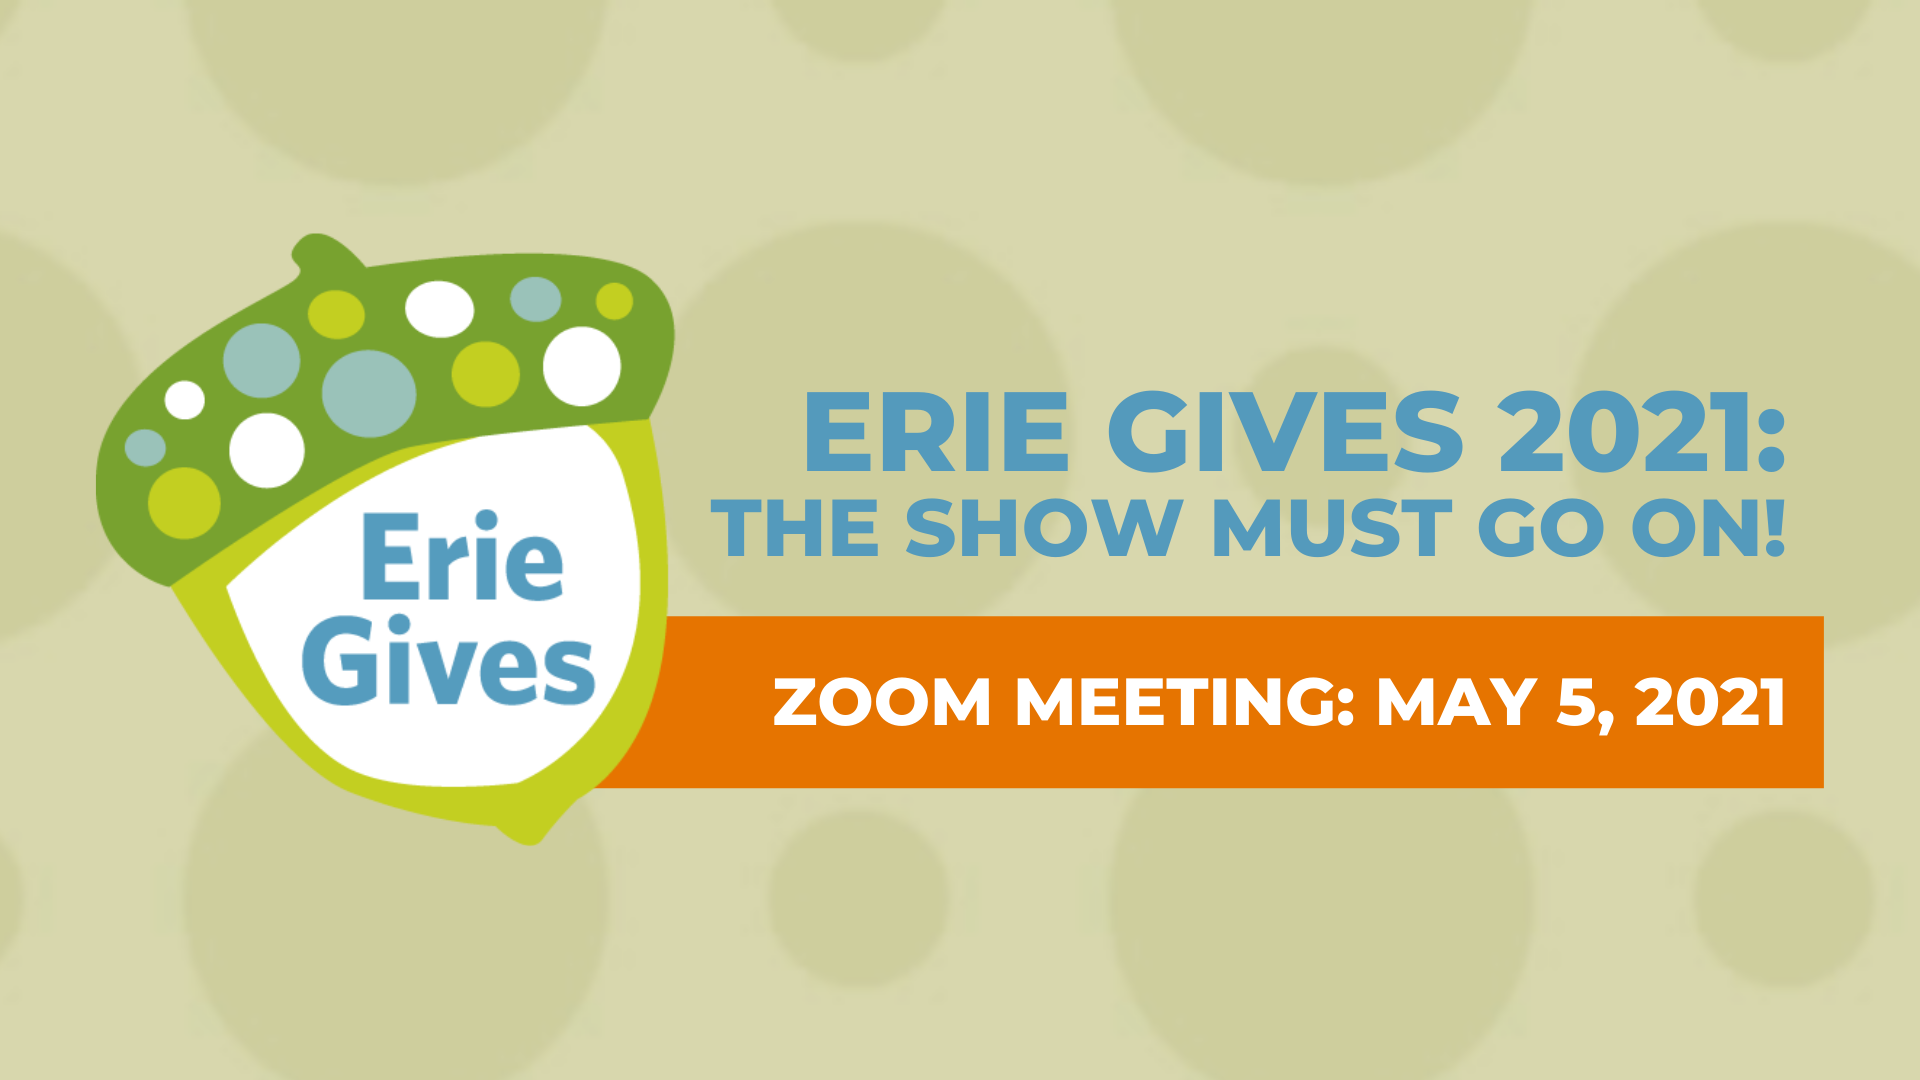 [Zoom Meeting] Erie Gives 2021: The Show Must Go On!